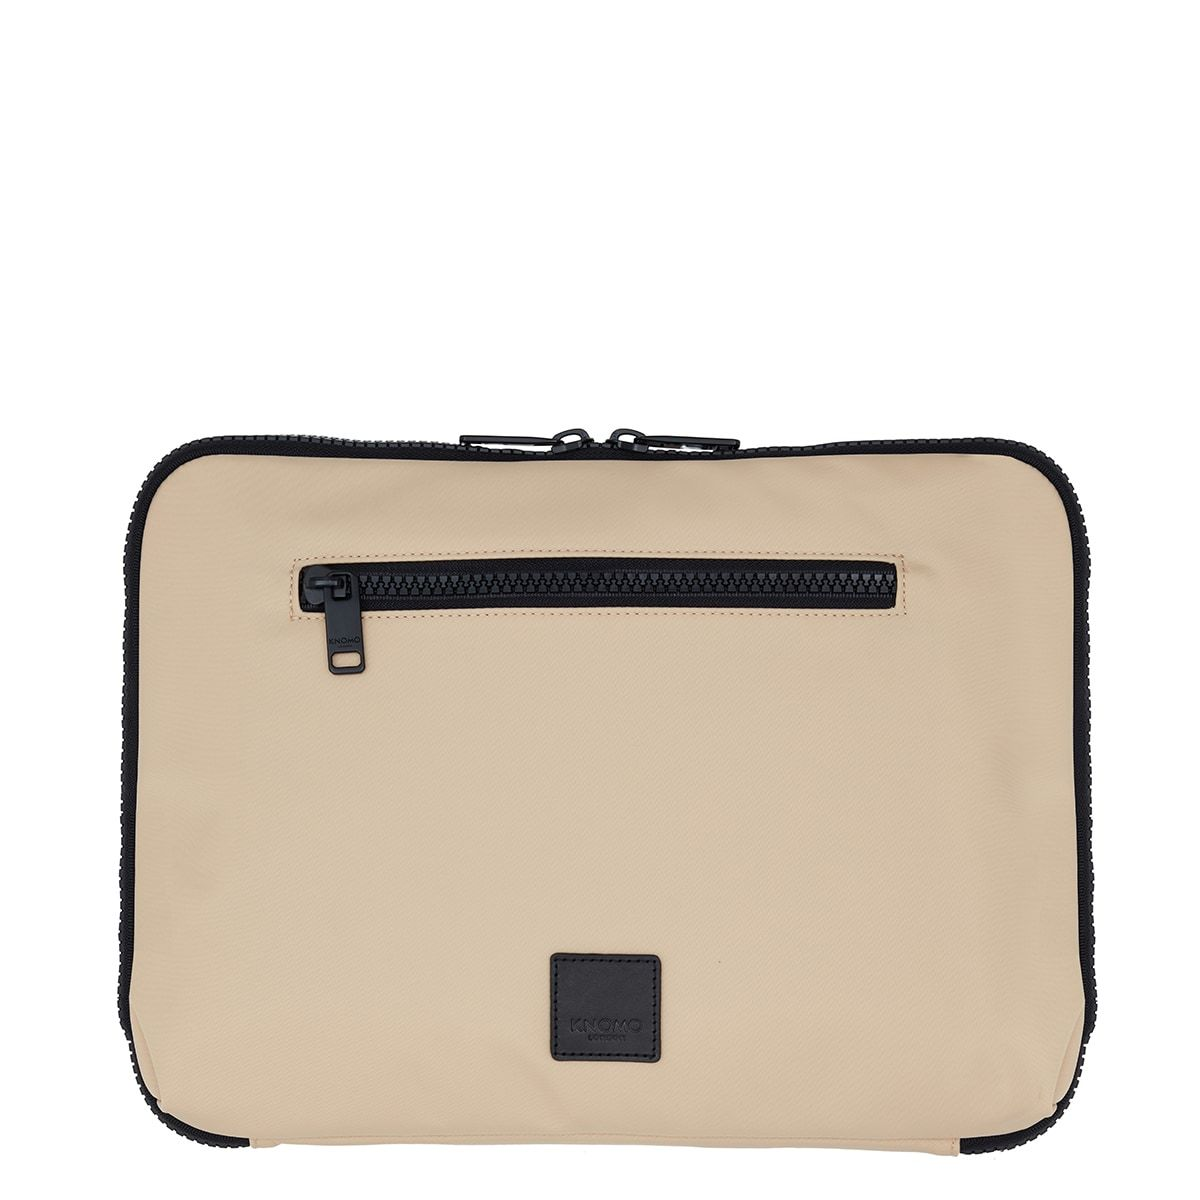 "KNOMO Fulham Knomad X-Body Organiser Tech Organiser From Front 13"" -  Trench Beige 